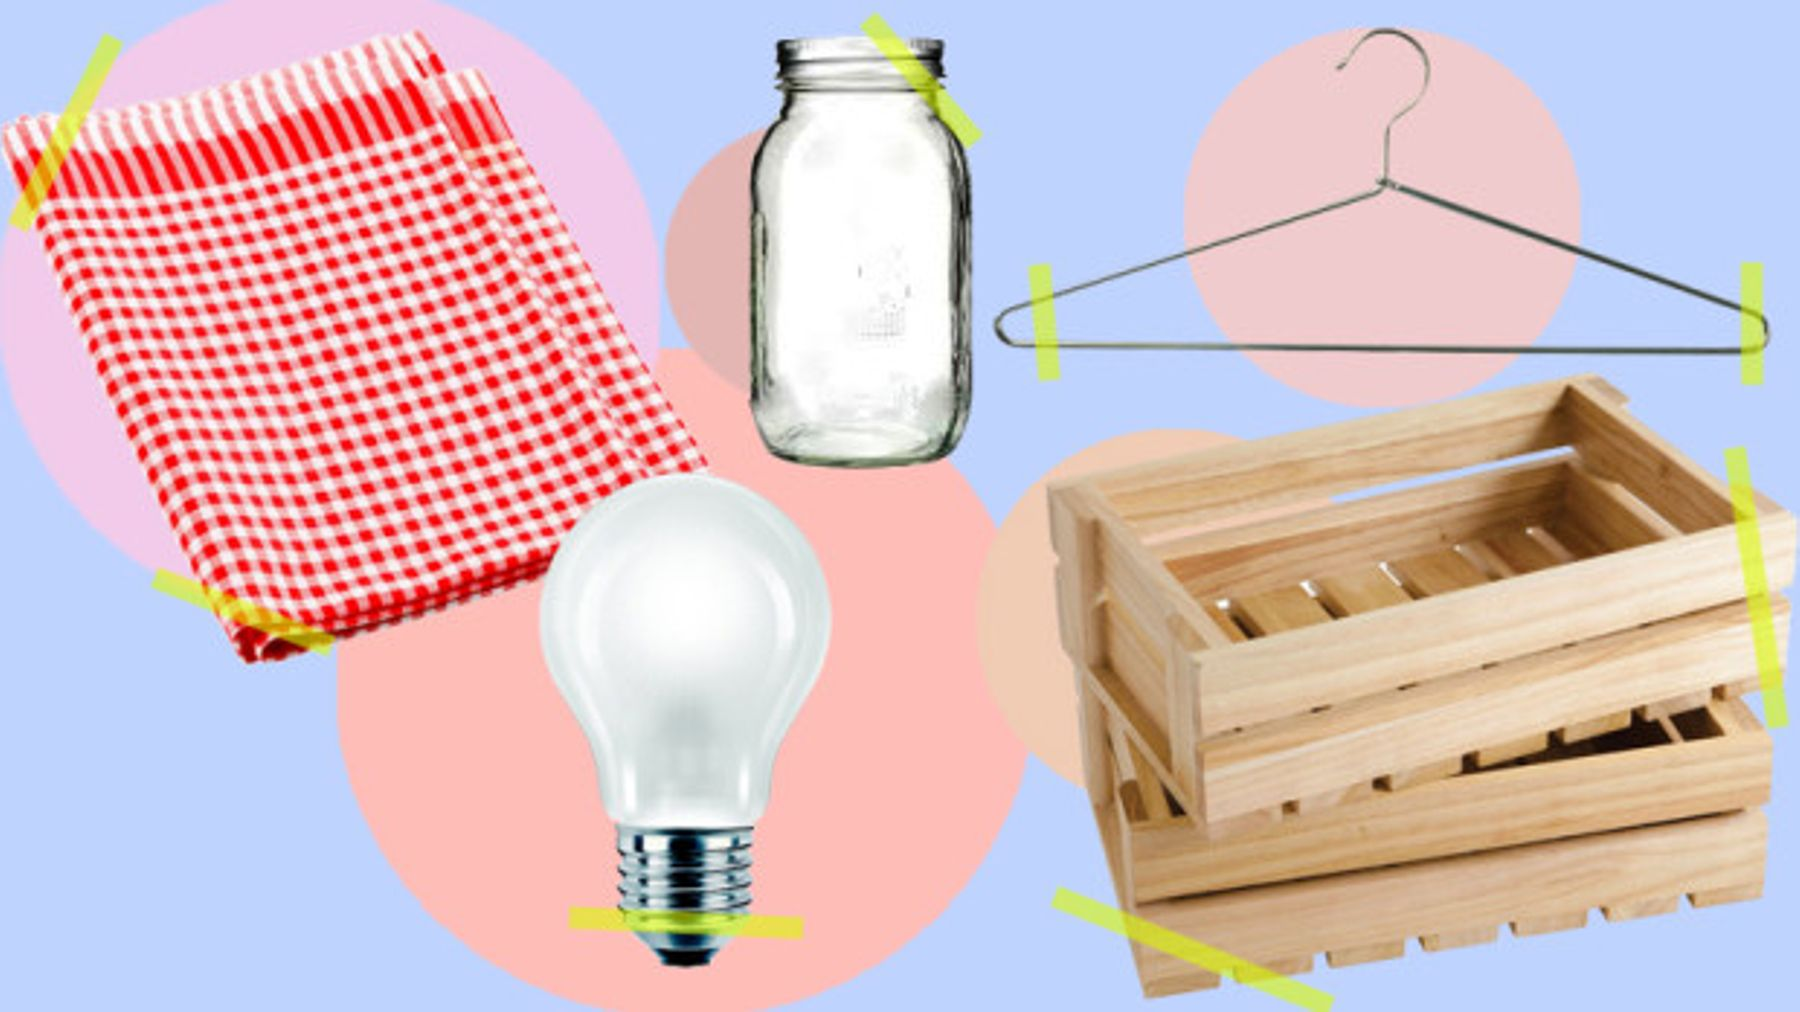 5 Easy Diys You Can Do With Stuff You Probably Have Lying